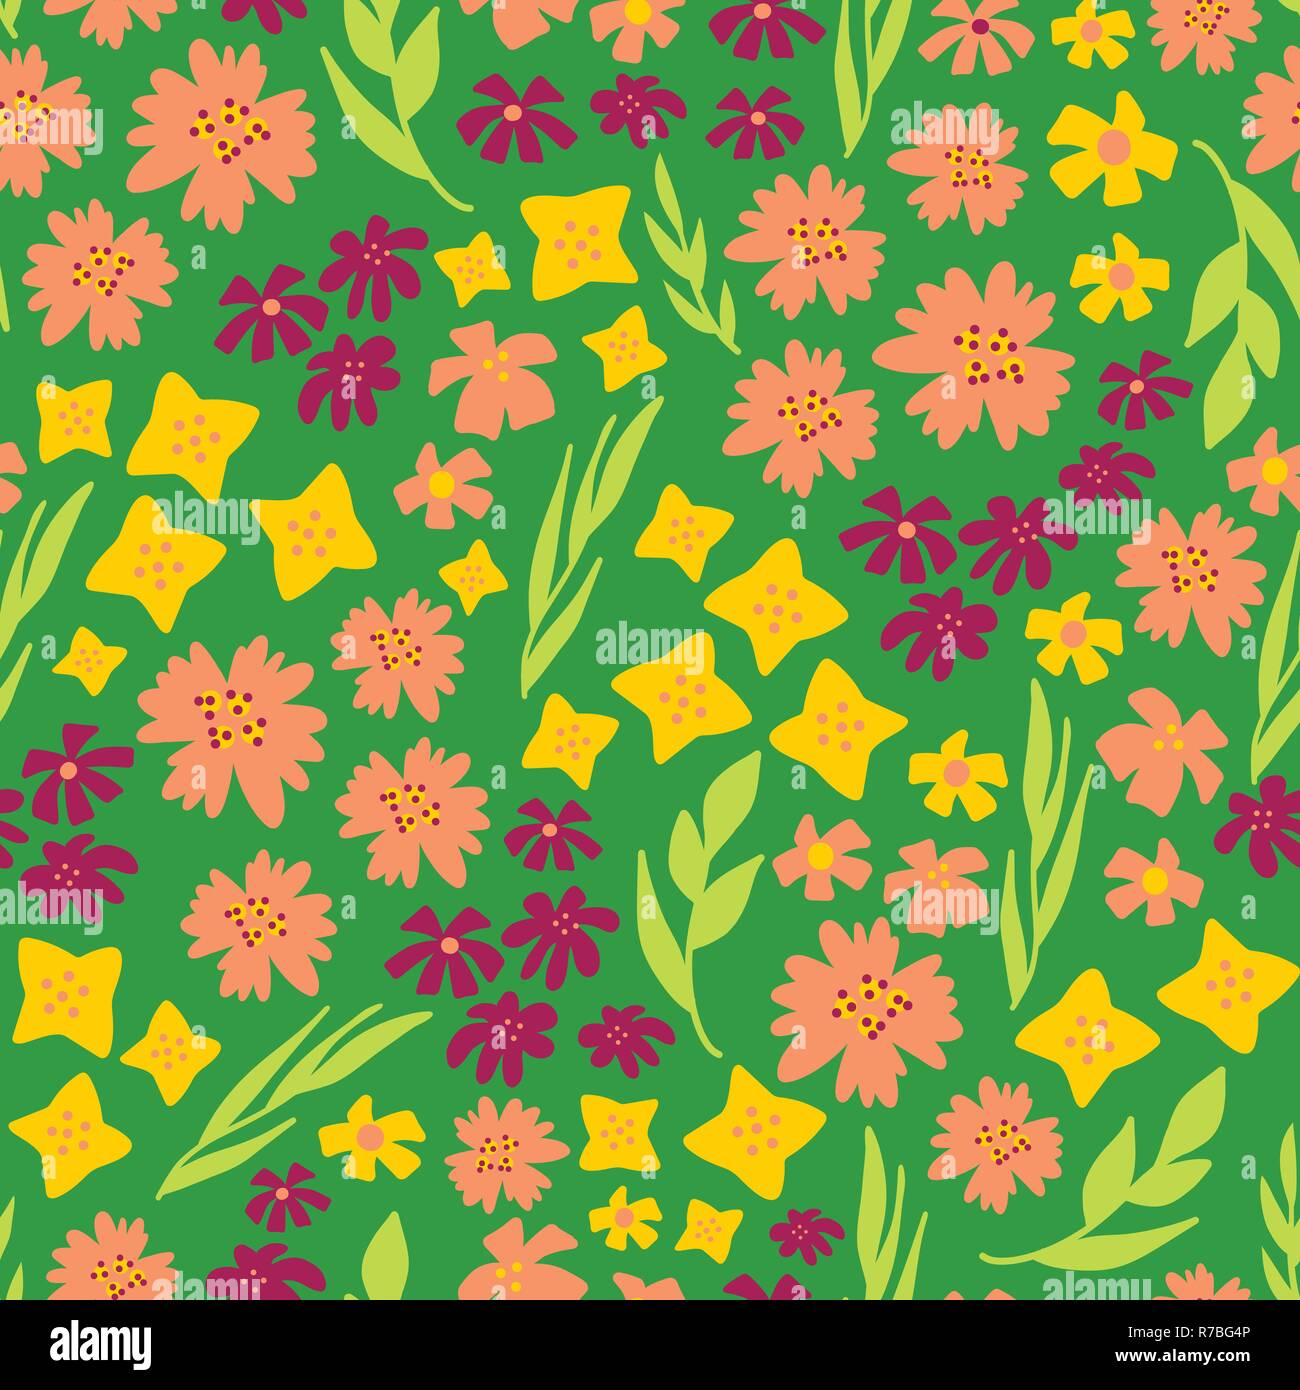 Spring Flowers Seamless Vector Repeat Pattern Hand Drawn Florals